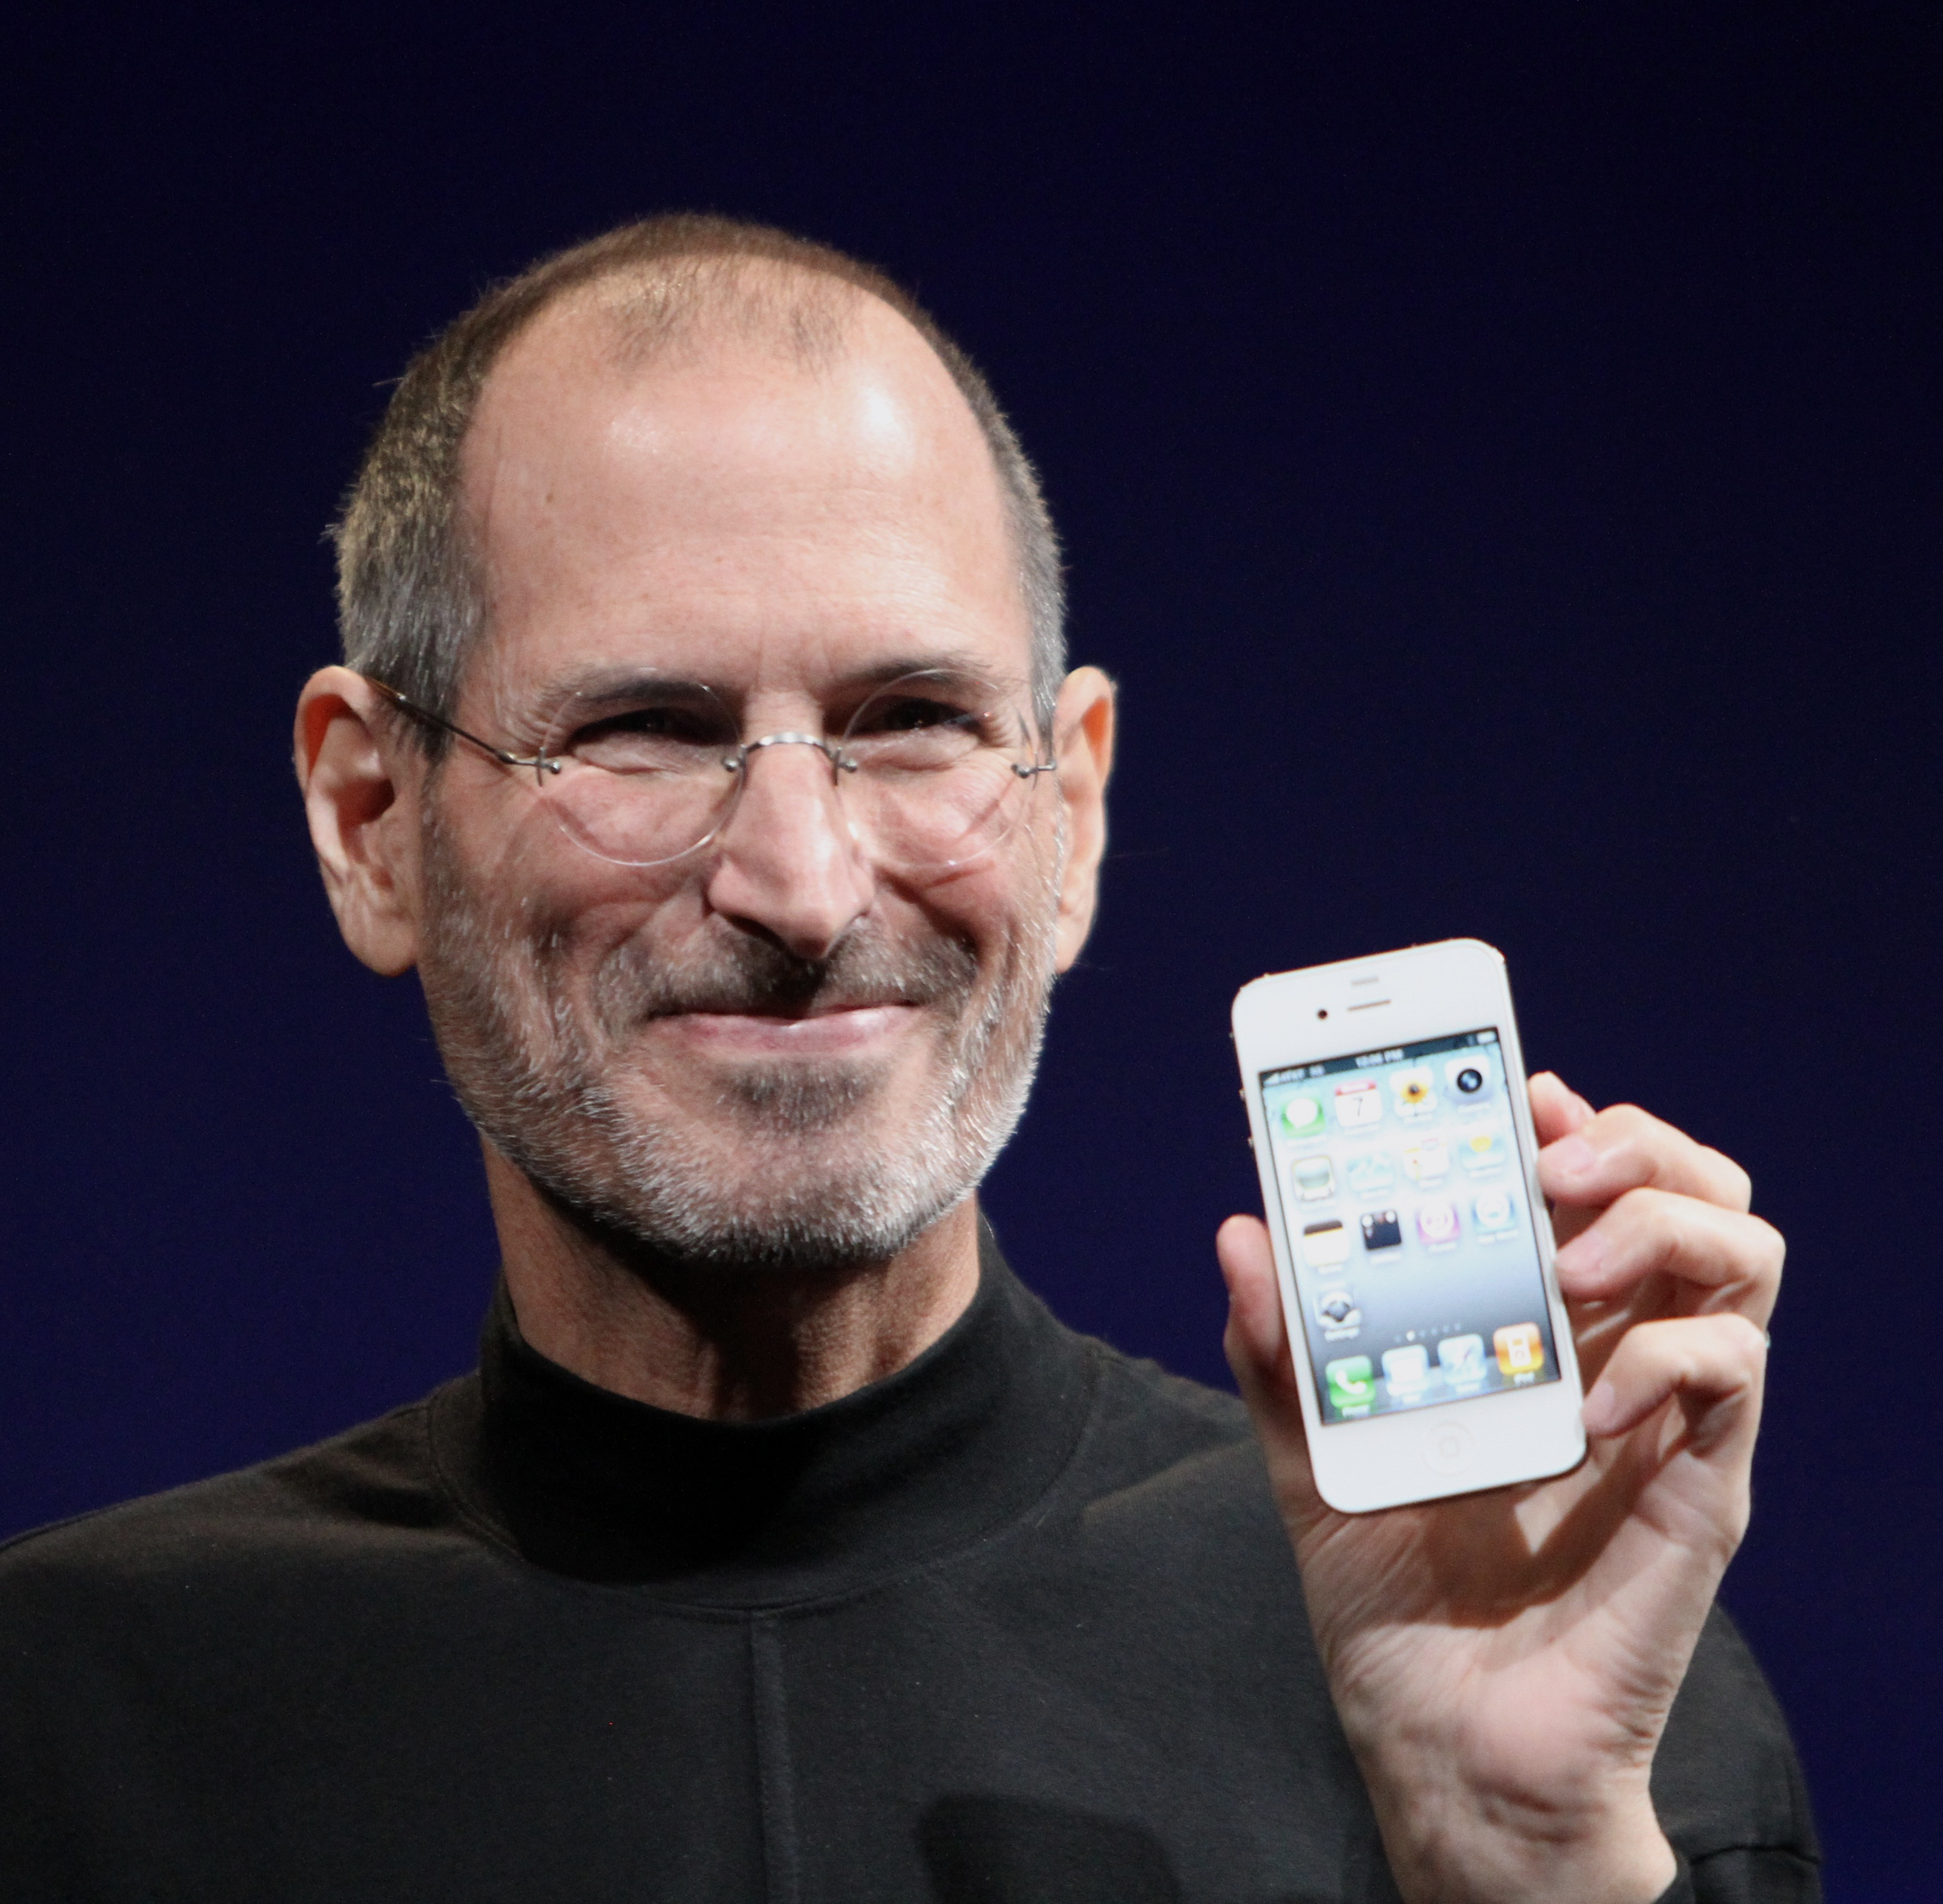 Steve Jobs, the late founder and CEO of Apple Inc., holds an iPhone.